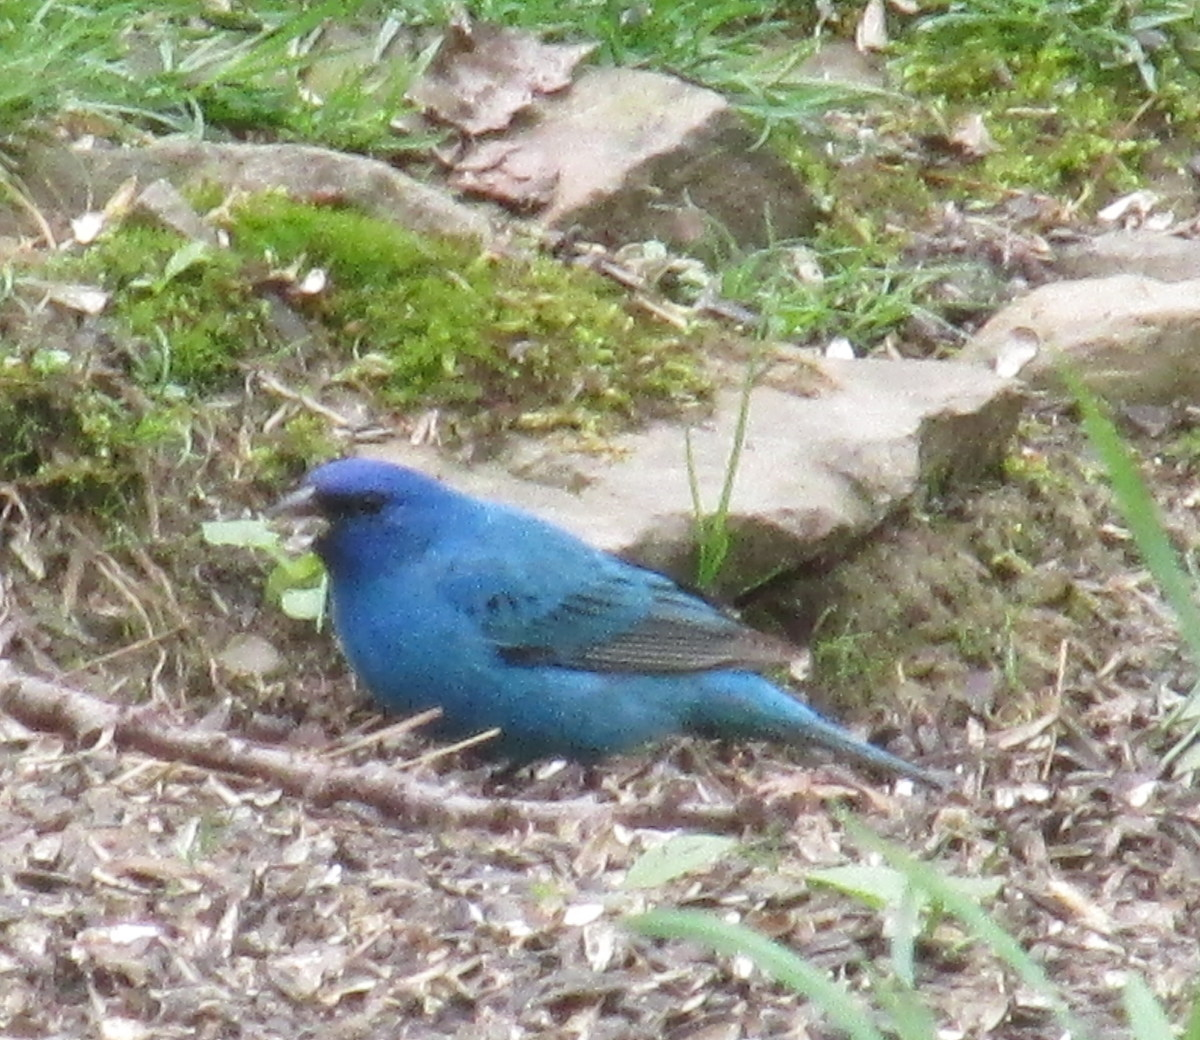 Male Indigo Bunting foraging for seeds.  His cobalt blue color is due to a layer of cells that reflect the light.  Our eyes perceive this as blue, but the true color (brown) comes from melanin.